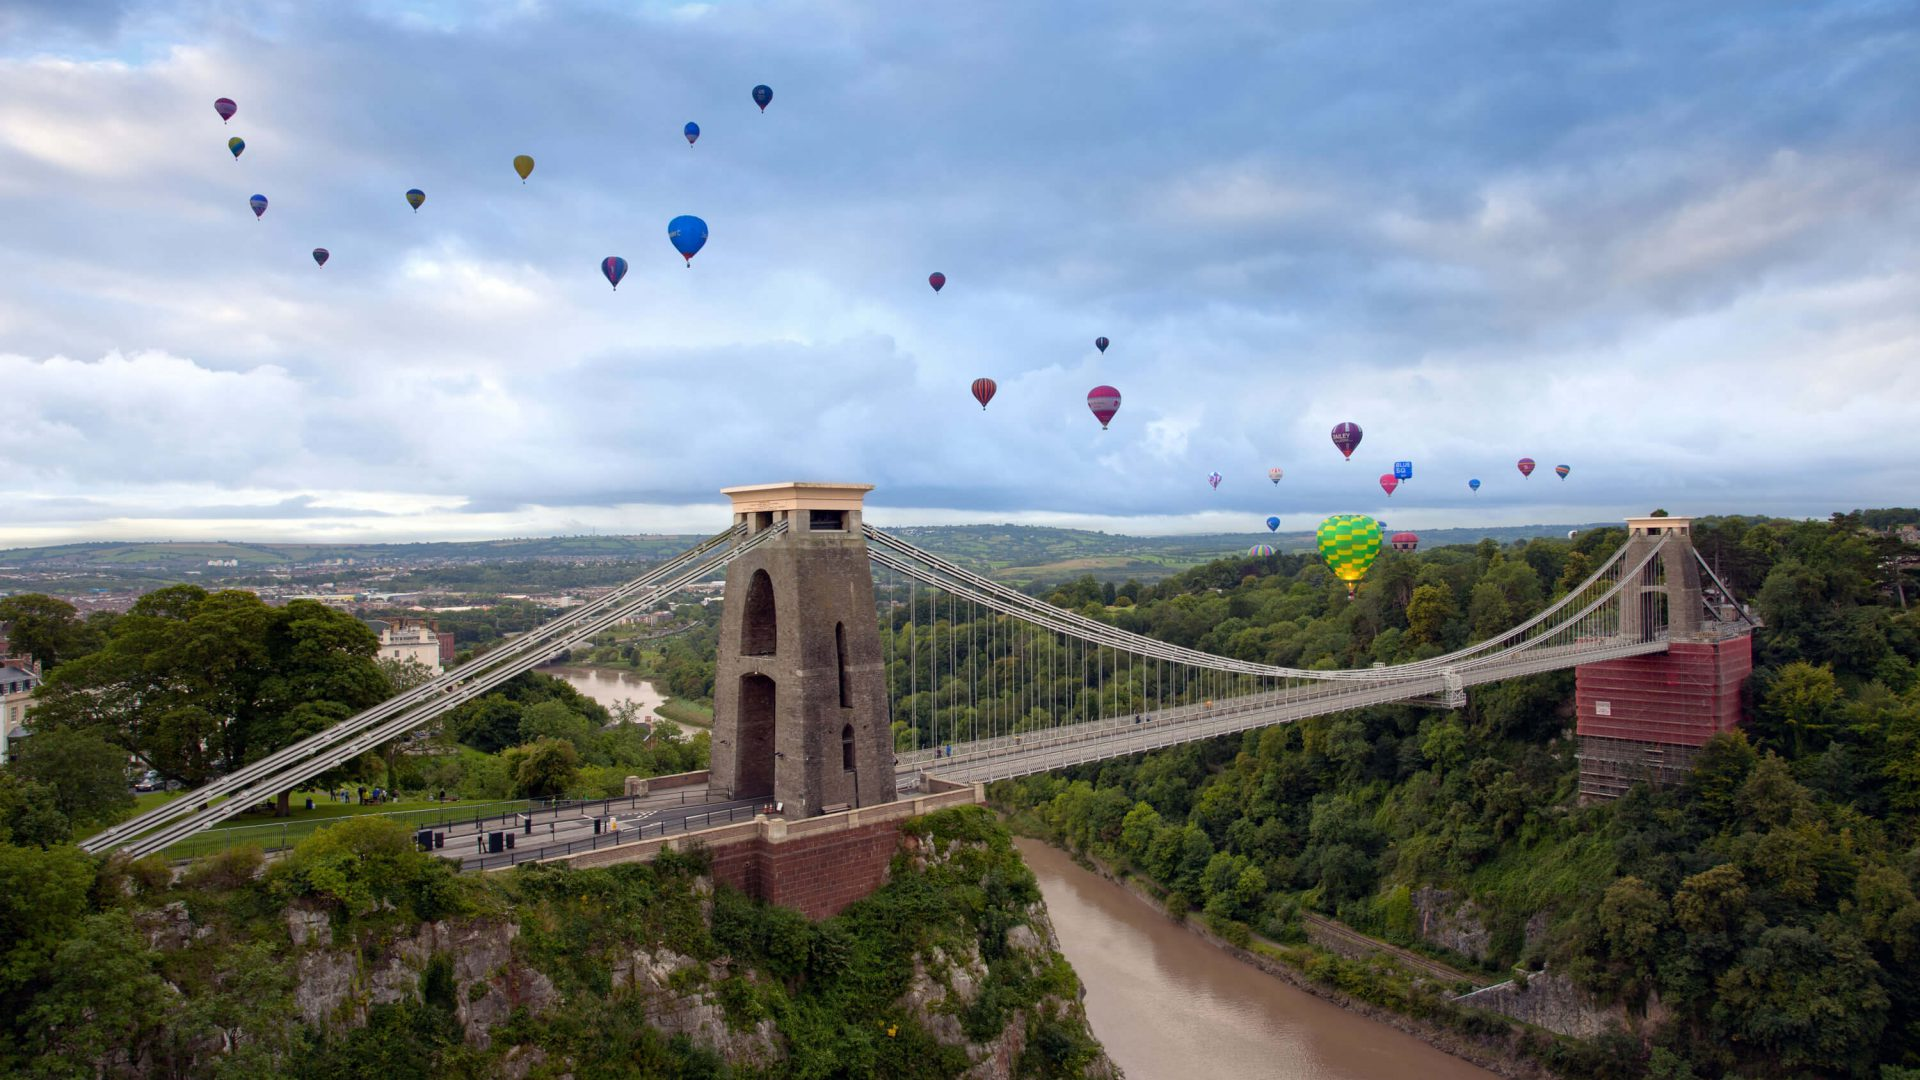 Bristol's Clifton Suspension Bridge is surrounded in the sky by colourful hot air-balloons